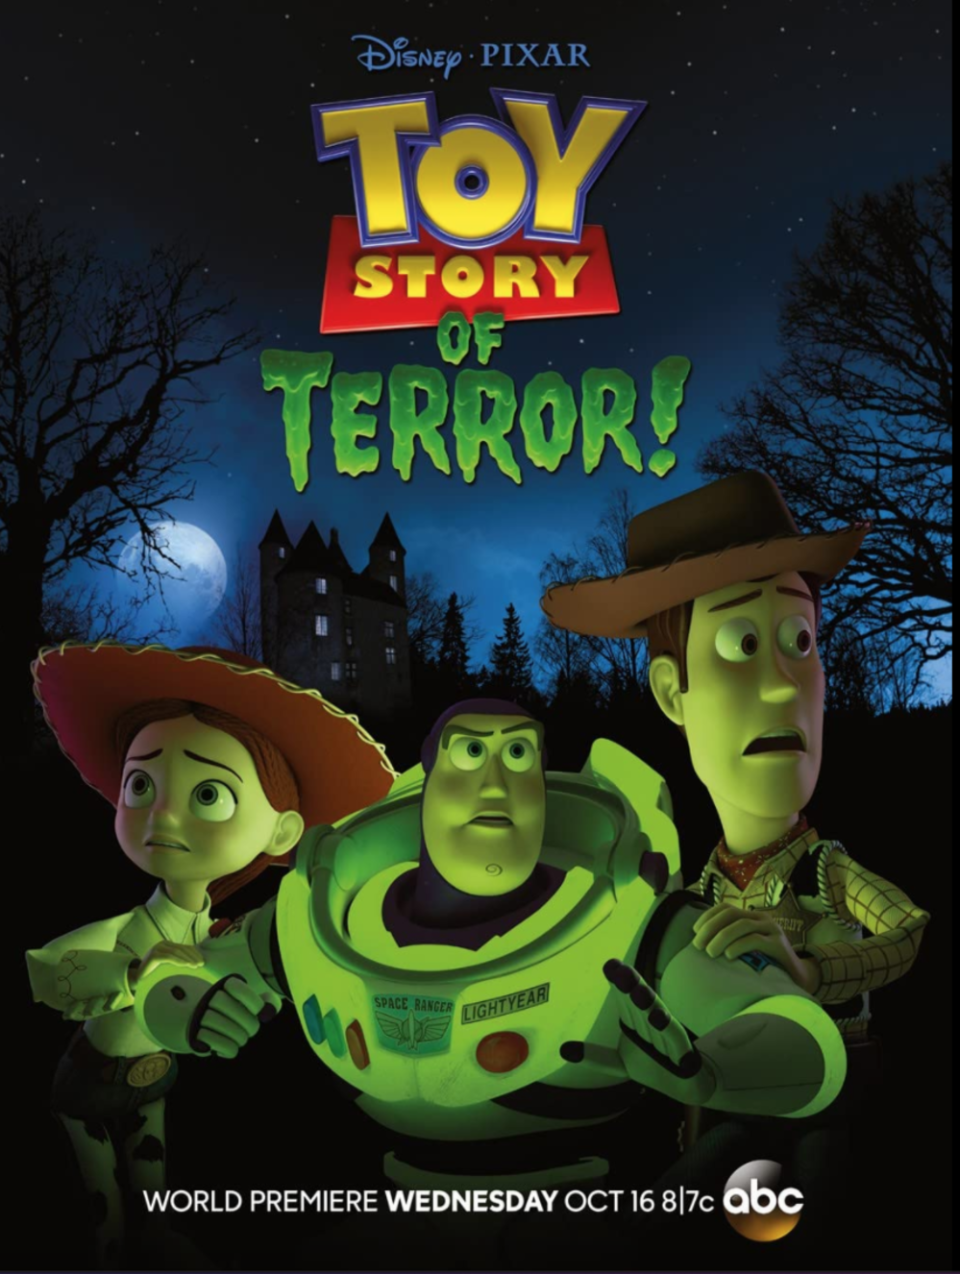 """<p>Woody, Buzz, Jessie and the <em>Toy Story</em> gang take a road trip, which takes an unexpected turn when they have a flat tire and have to spend a night at a """"haunted"""" roadside motel. When one toy goes missing, everyone find themselves in a series of mysterious events.</p><p><a class=""""link rapid-noclick-resp"""" href=""""https://go.redirectingat.com?id=74968X1596630&url=https%3A%2F%2Fwww.disneyplus.com%2Fmovies%2Ftoy-story-of-terror%2F5ilqJrWXDZEM&sref=https%3A%2F%2Fwww.goodhousekeeping.com%2Flife%2Fentertainment%2Fg33651563%2Fdisney-halloween-movies%2F"""" rel=""""nofollow noopener"""" target=""""_blank"""" data-ylk=""""slk:WATCH NOW"""">WATCH NOW</a></p>"""